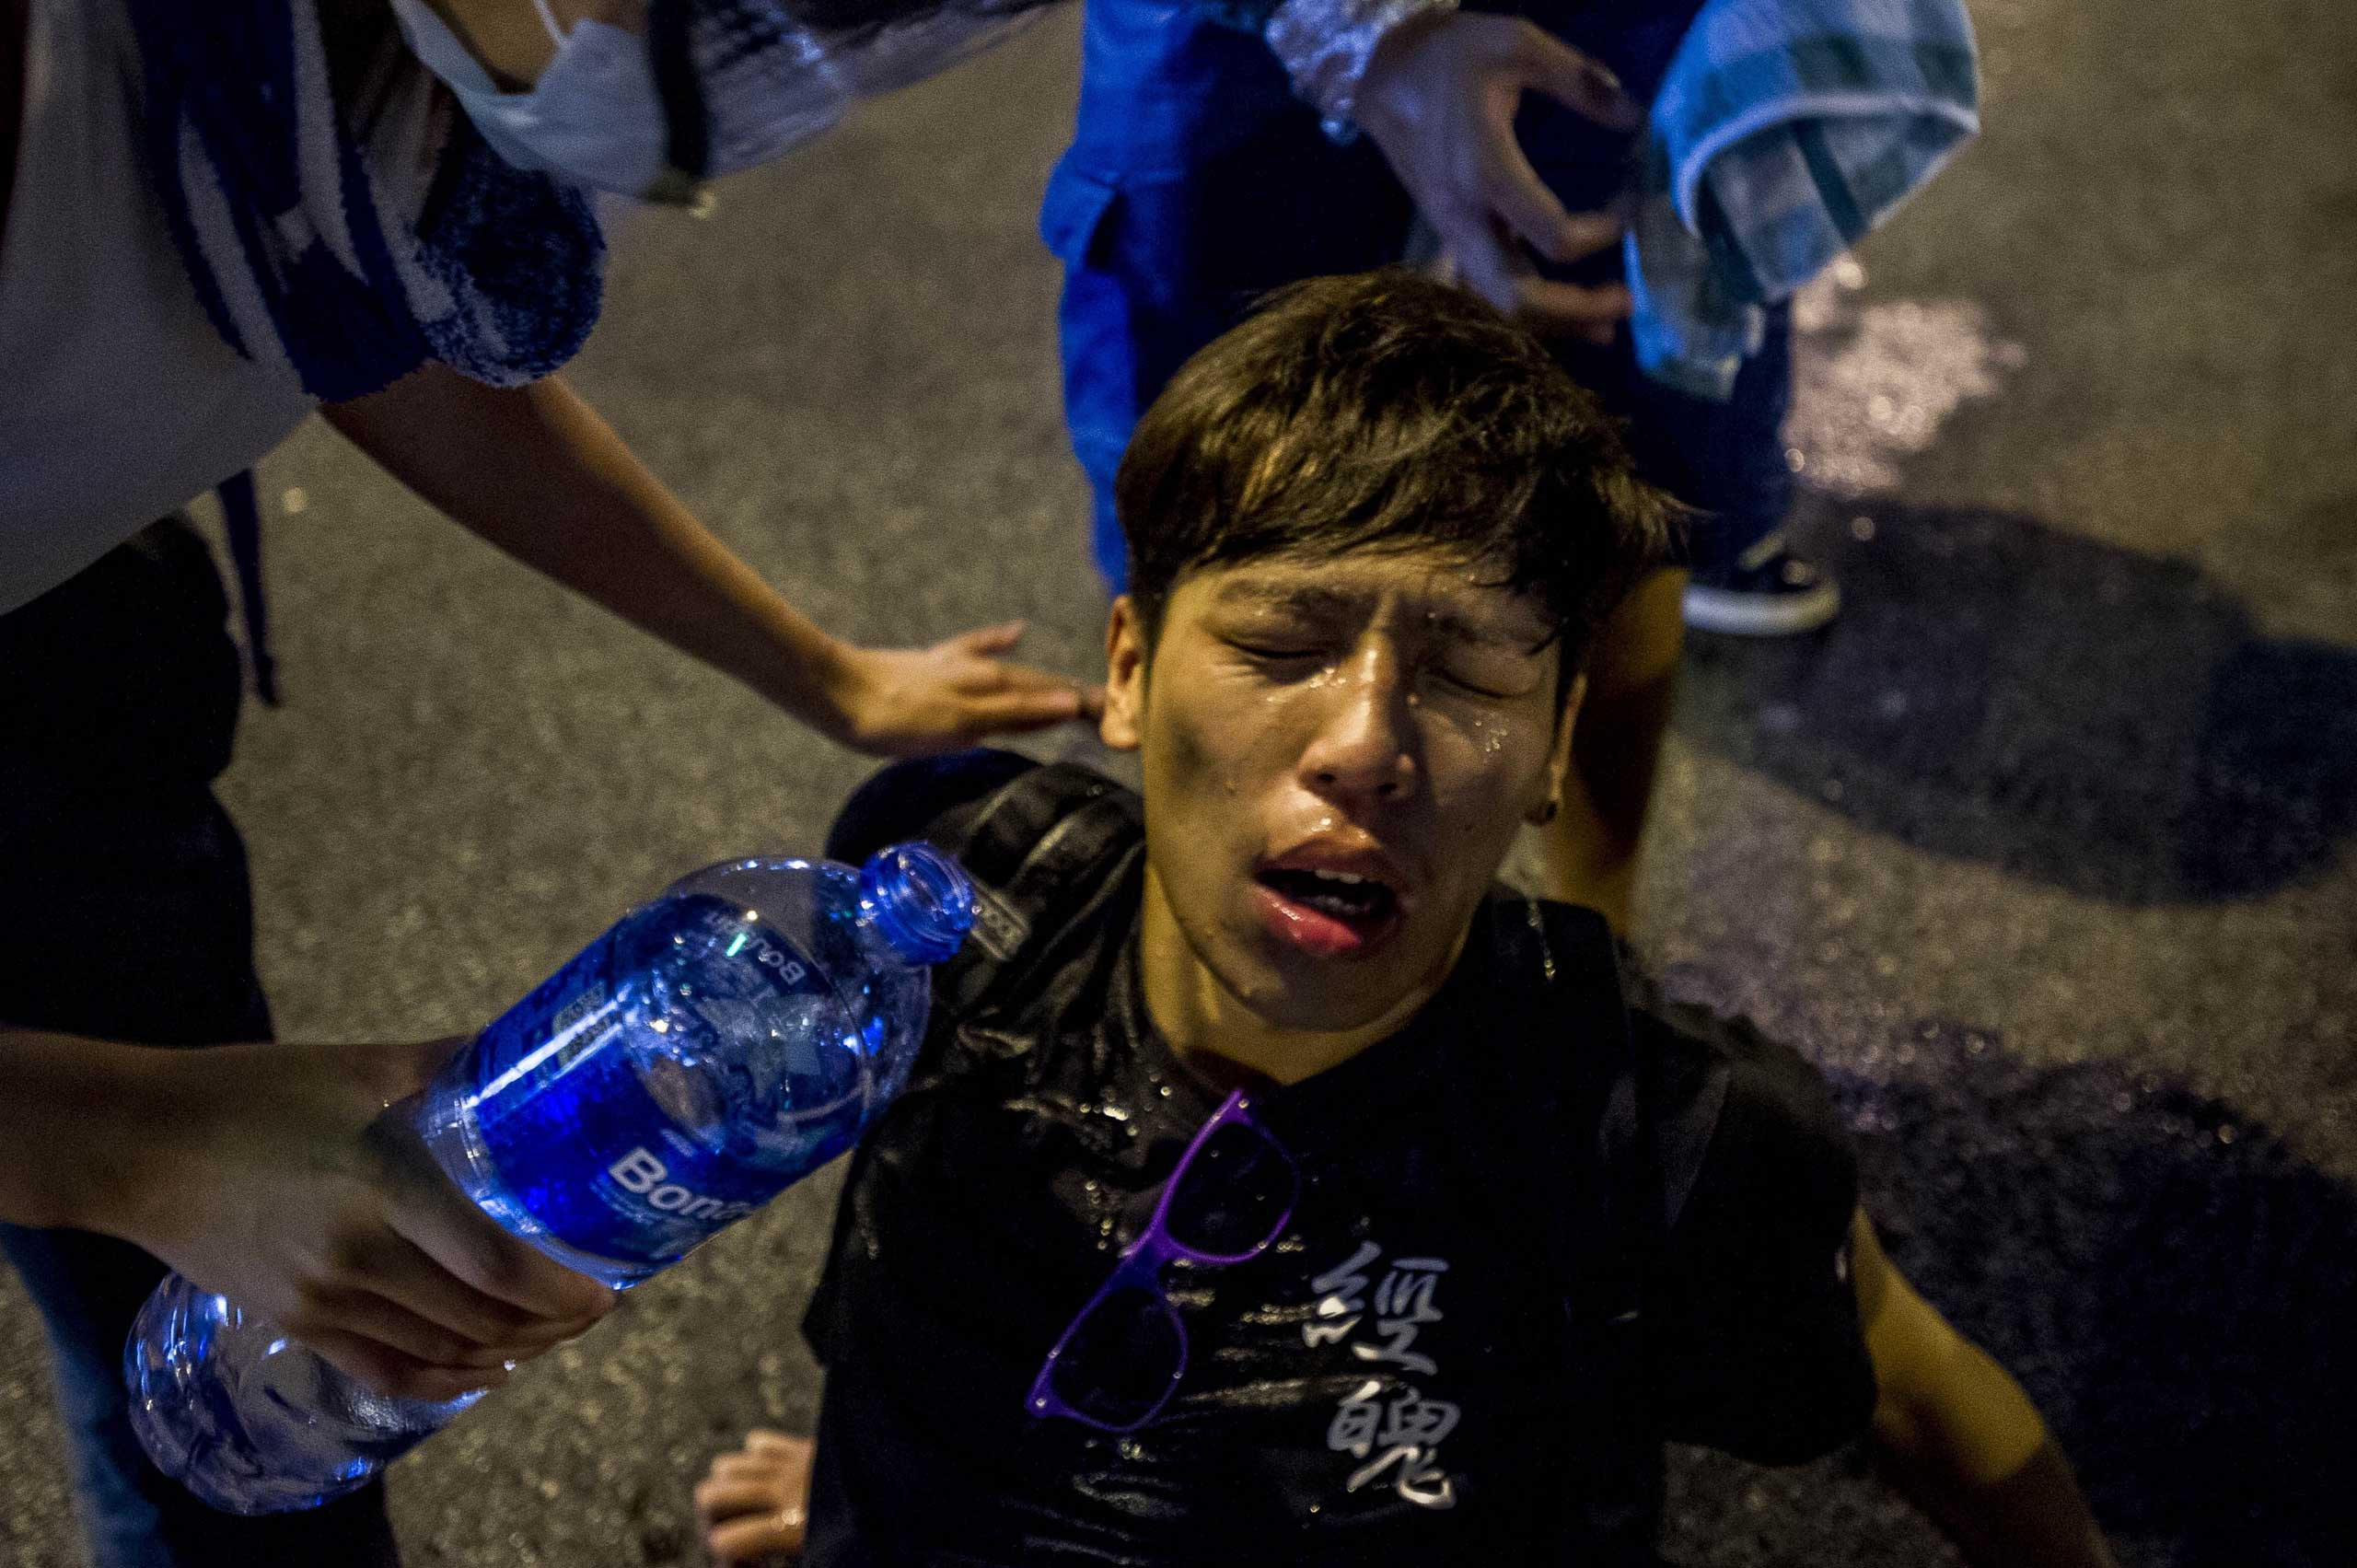 A pro-democracy demonstrator pours water over a man's face after police fired tear gas at protesters during a rally near the Hong Kong government headquarters on Sept. 28, 2014.